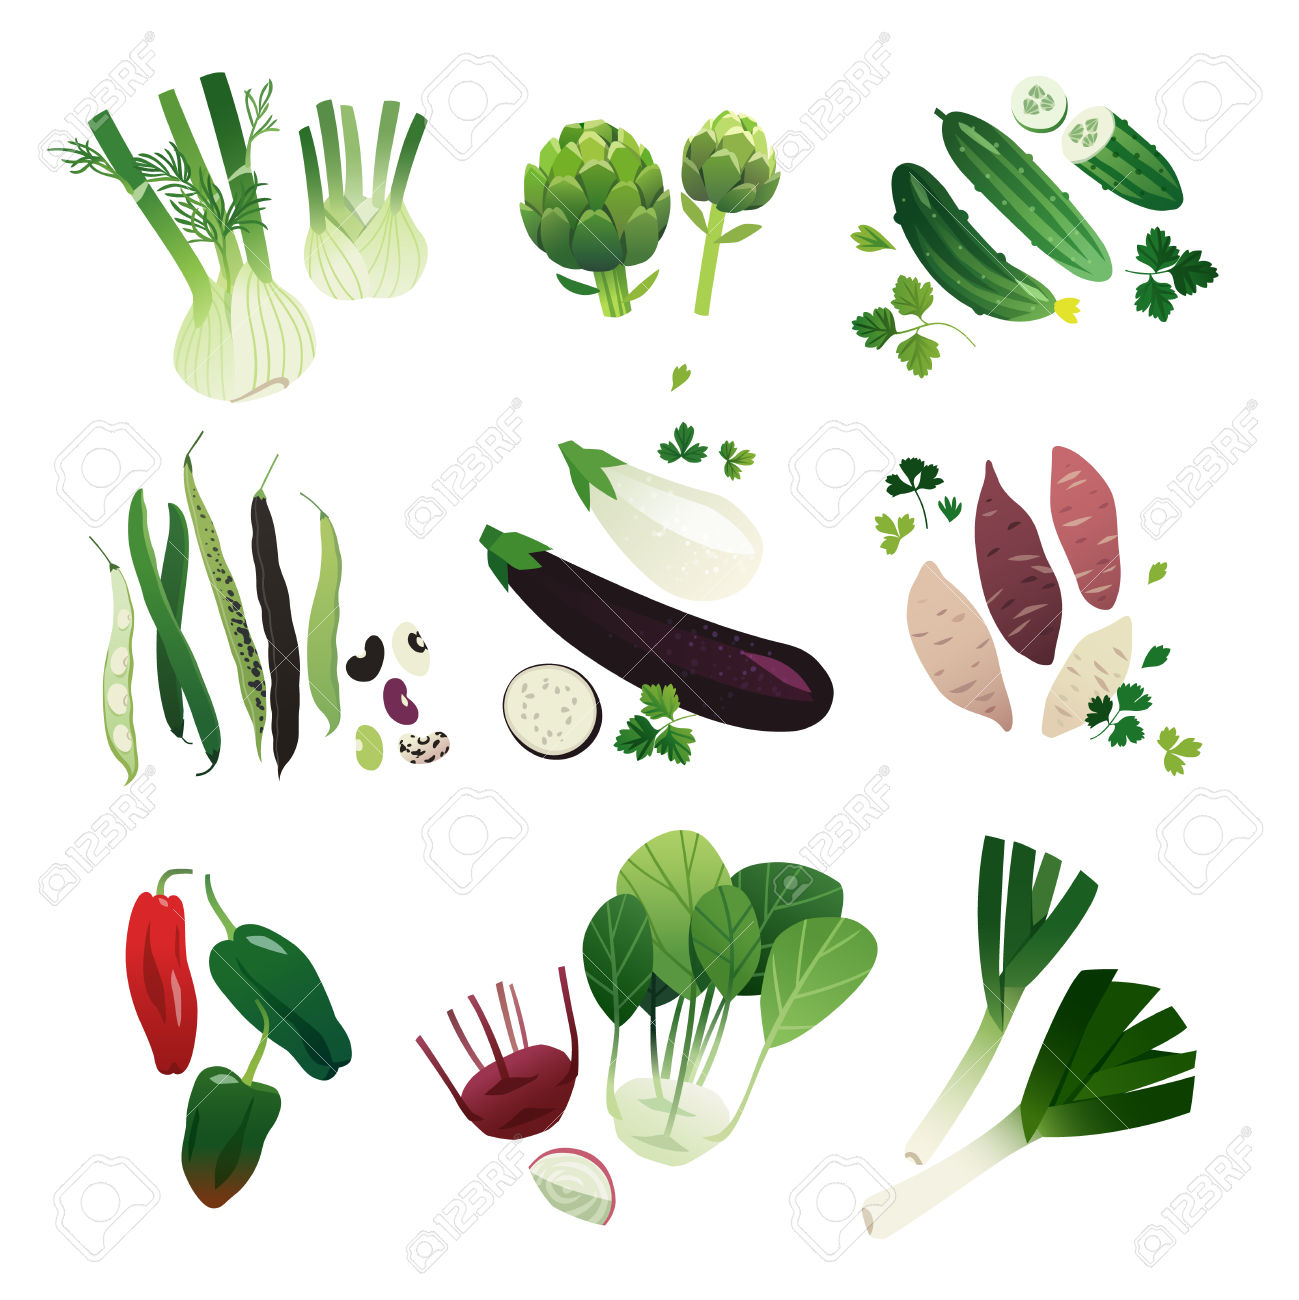 Collection Of Clip Art Vegetable Illustrations: Fennel, Artichoke.